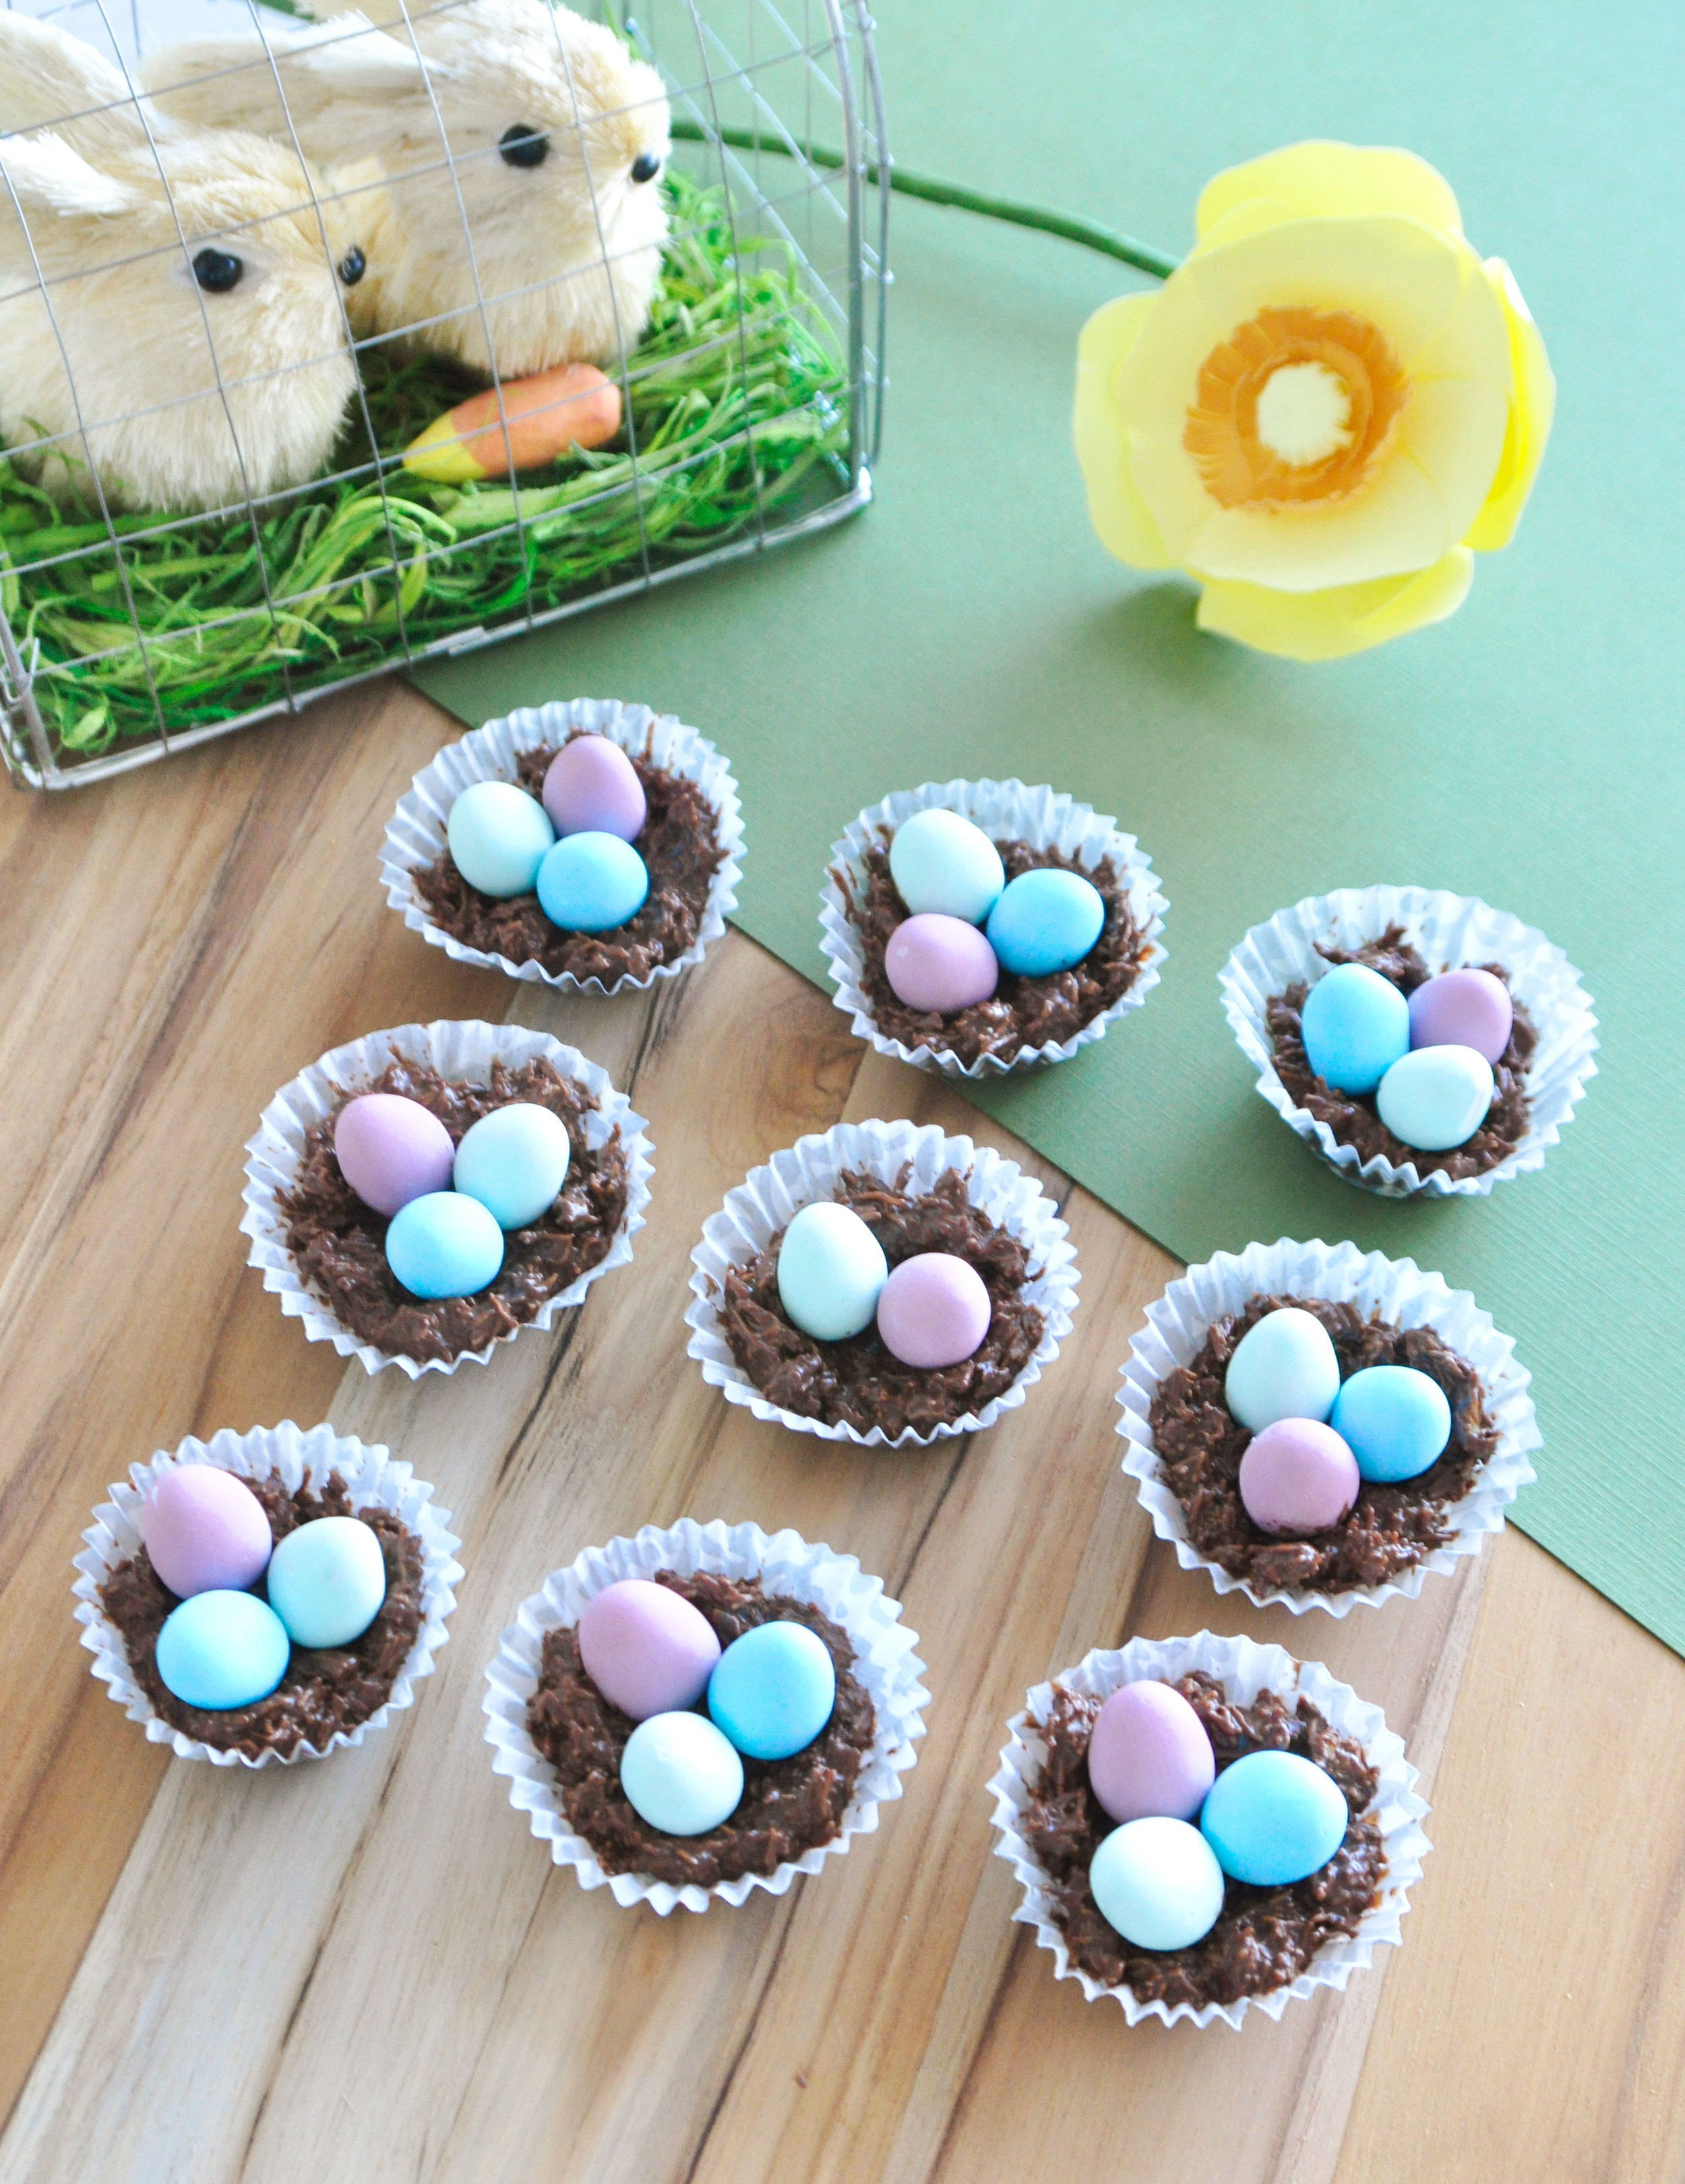 How To; ChocolateEaster Nests - 03.29.18